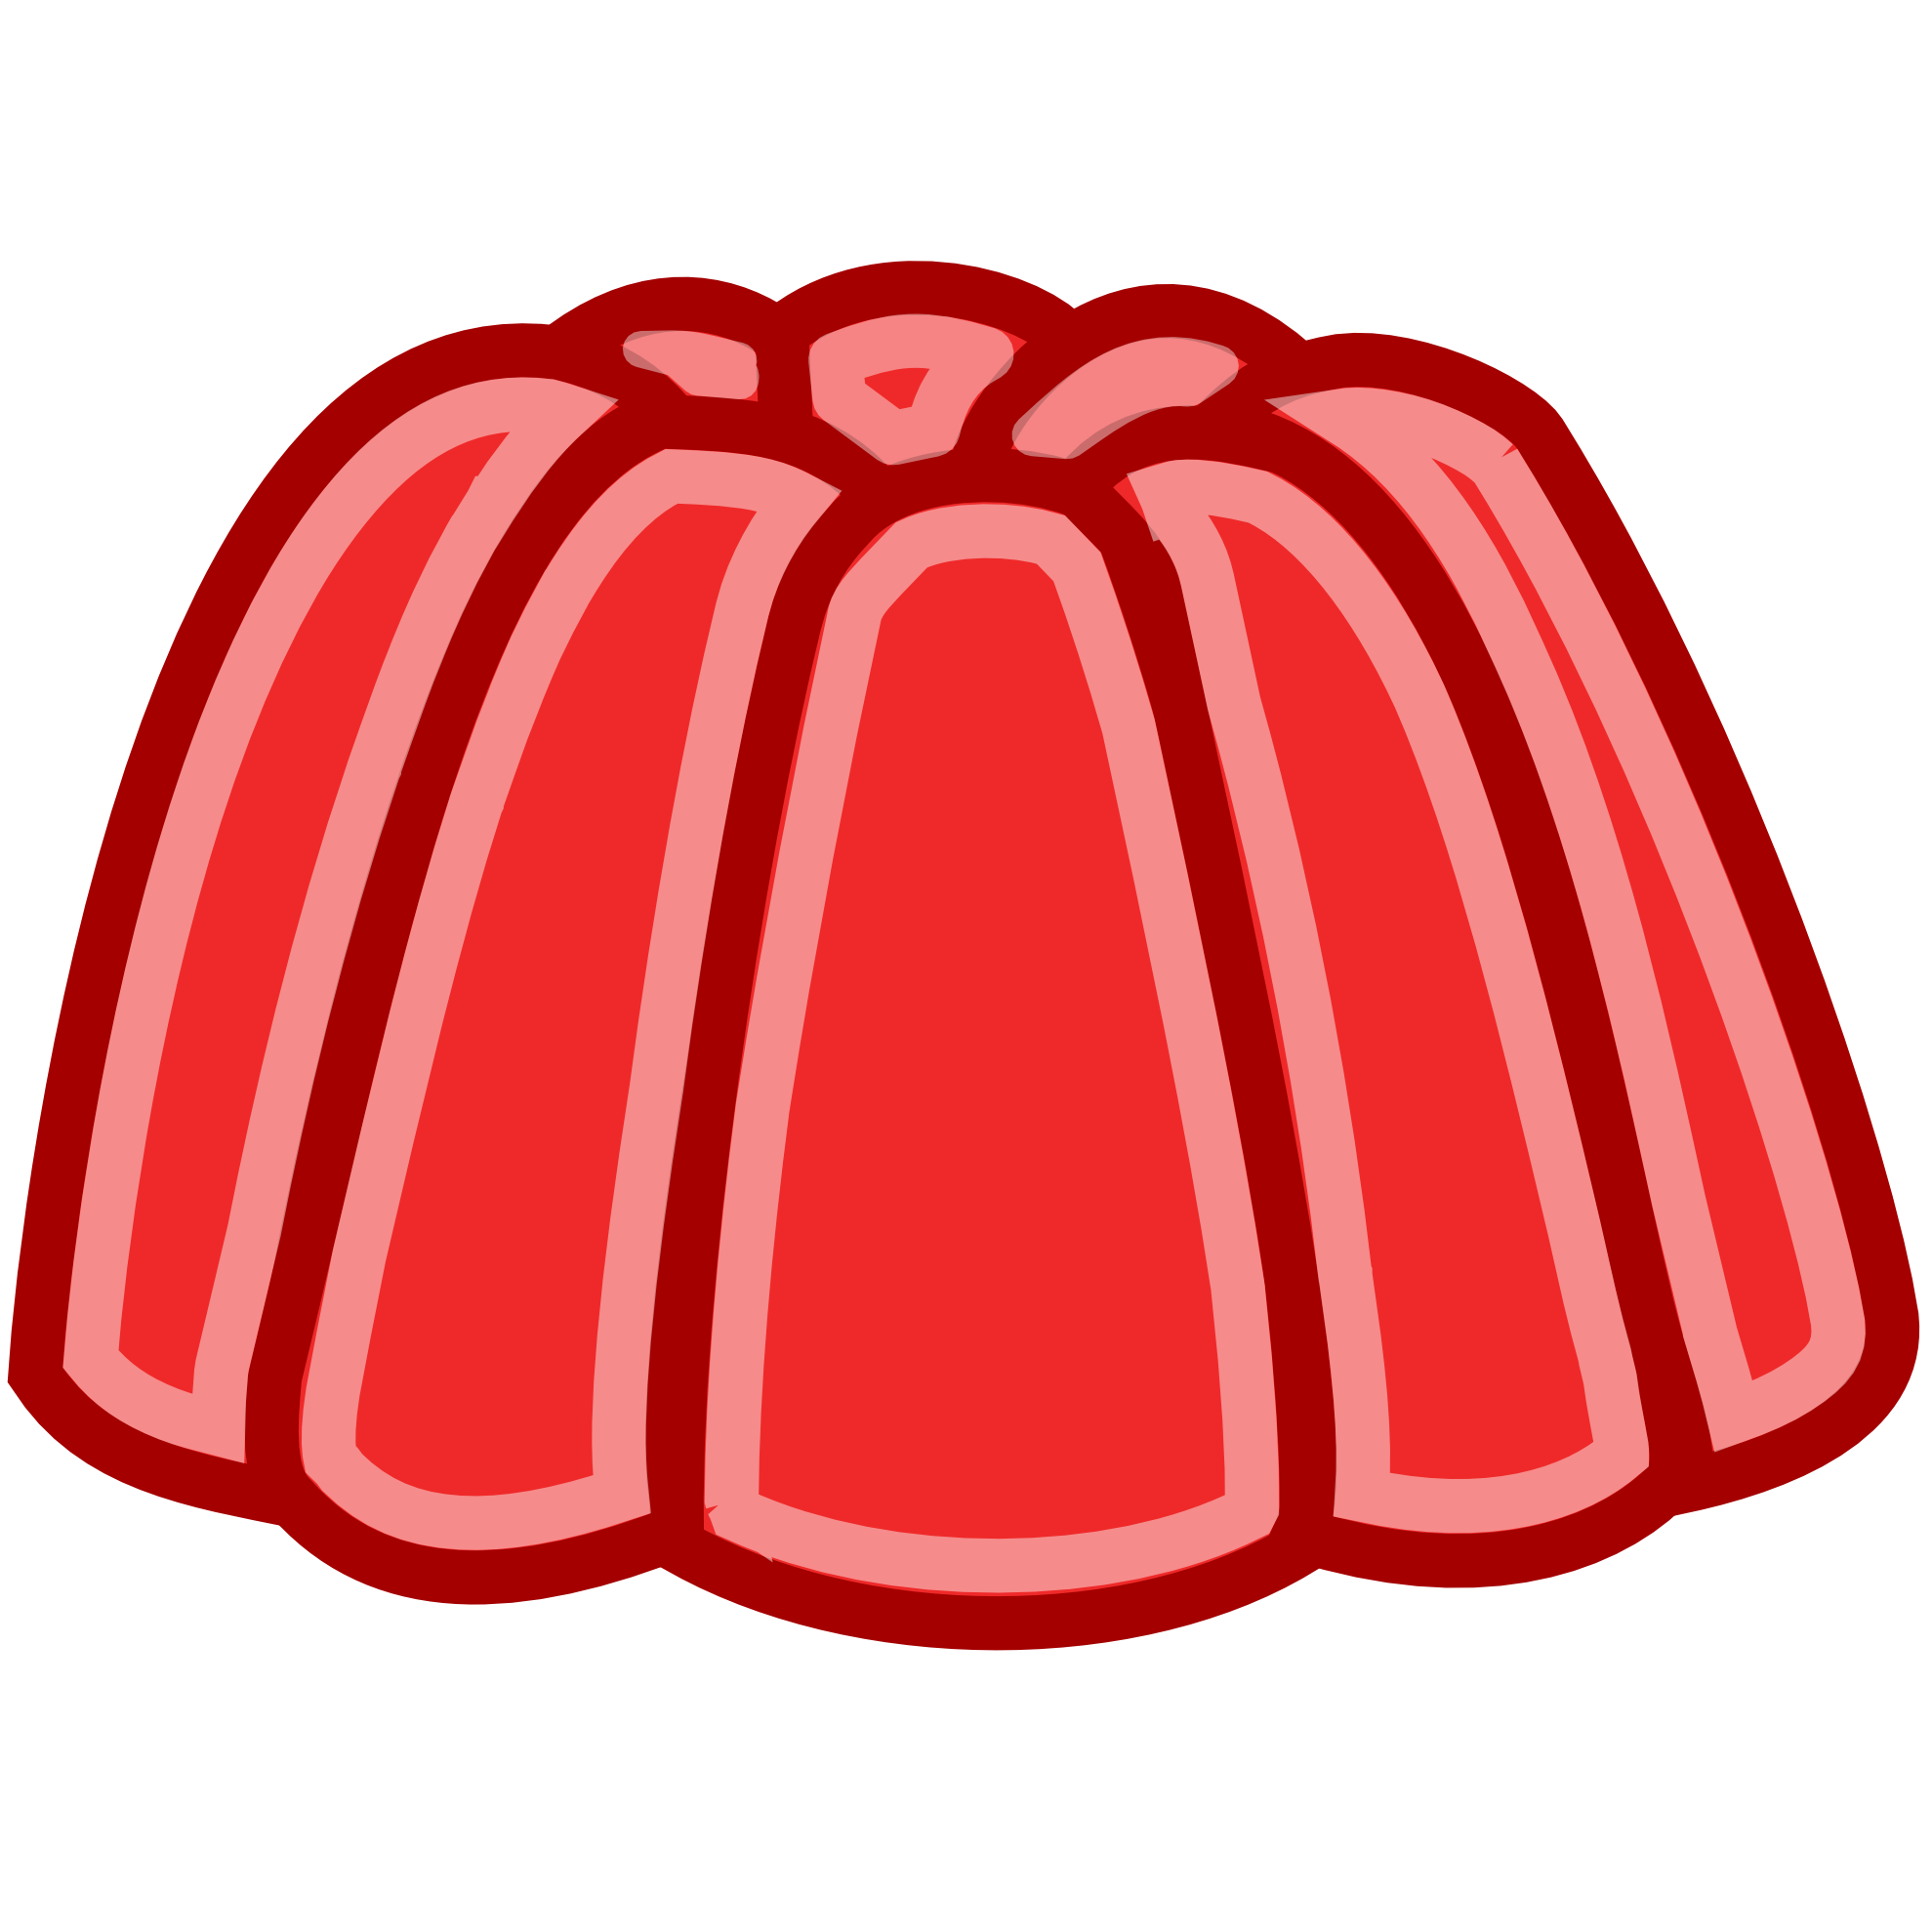 Jelly clipart Jelly%20clipart 20clipart Free Images Clipart